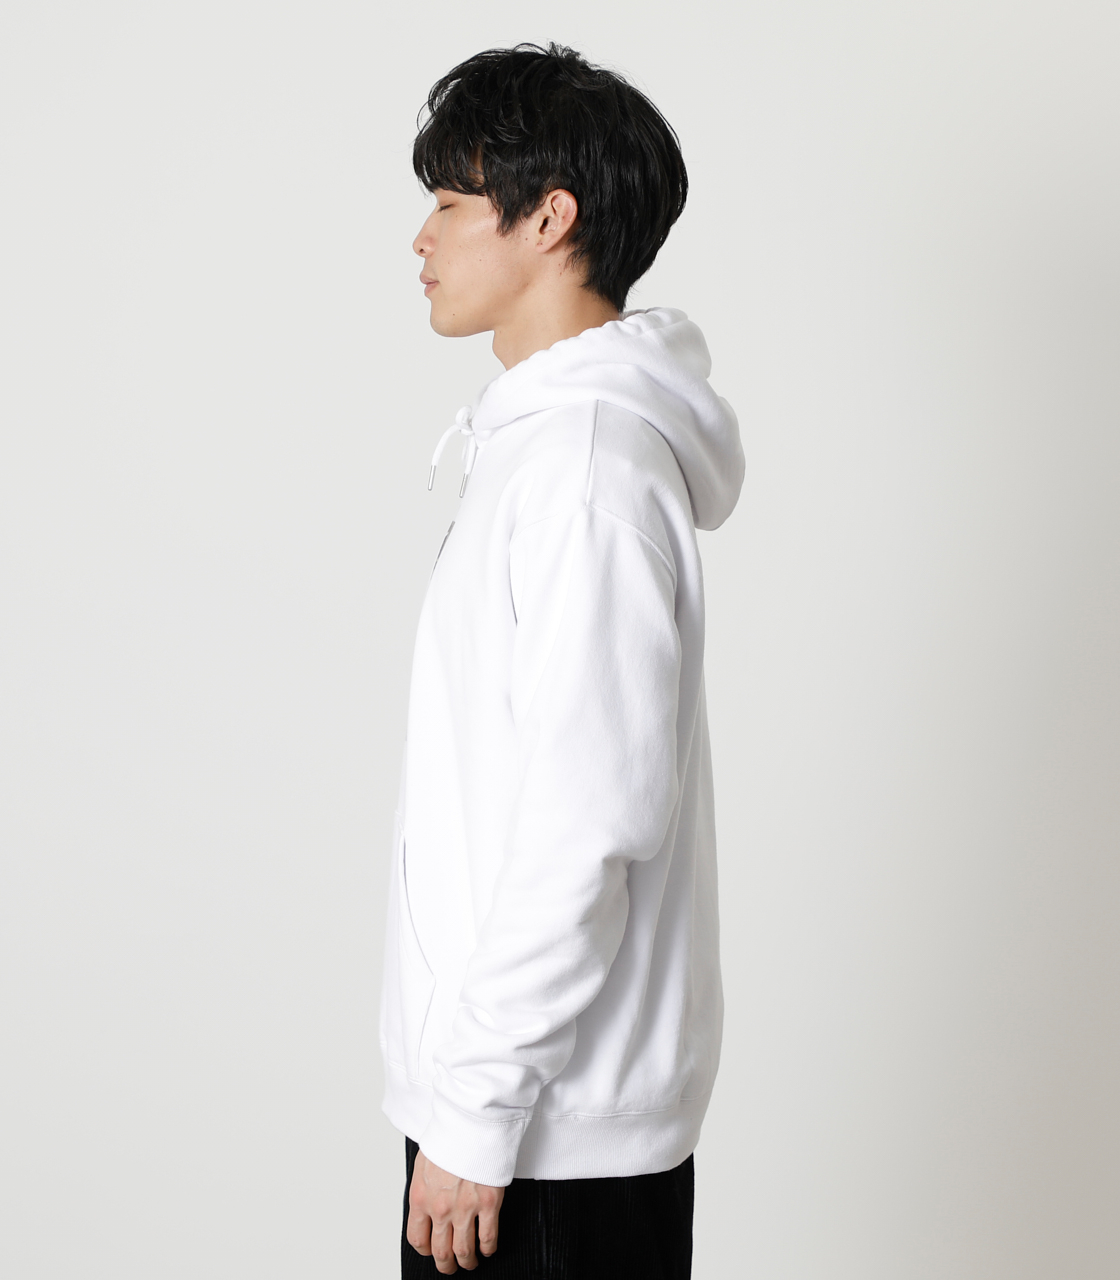 STAY IN POSITIVE HOODIE/ステイインポジティブフーディ 詳細画像 WHT 6